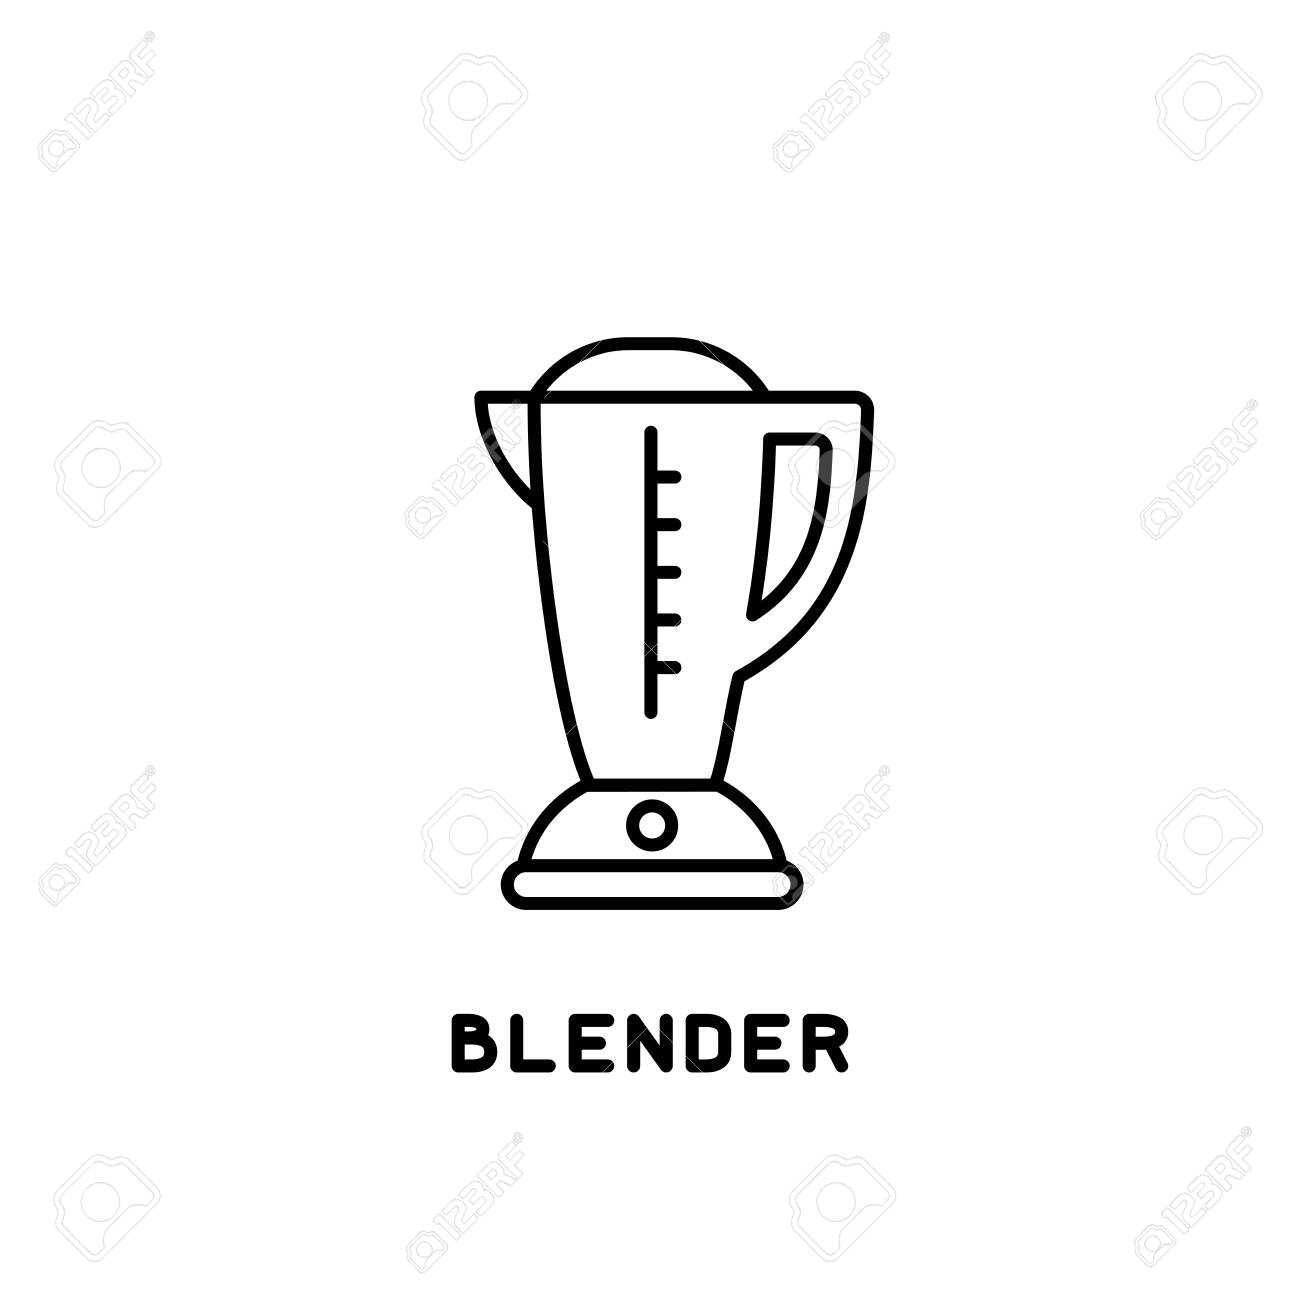 blender icon in linear style on white background - 130984741